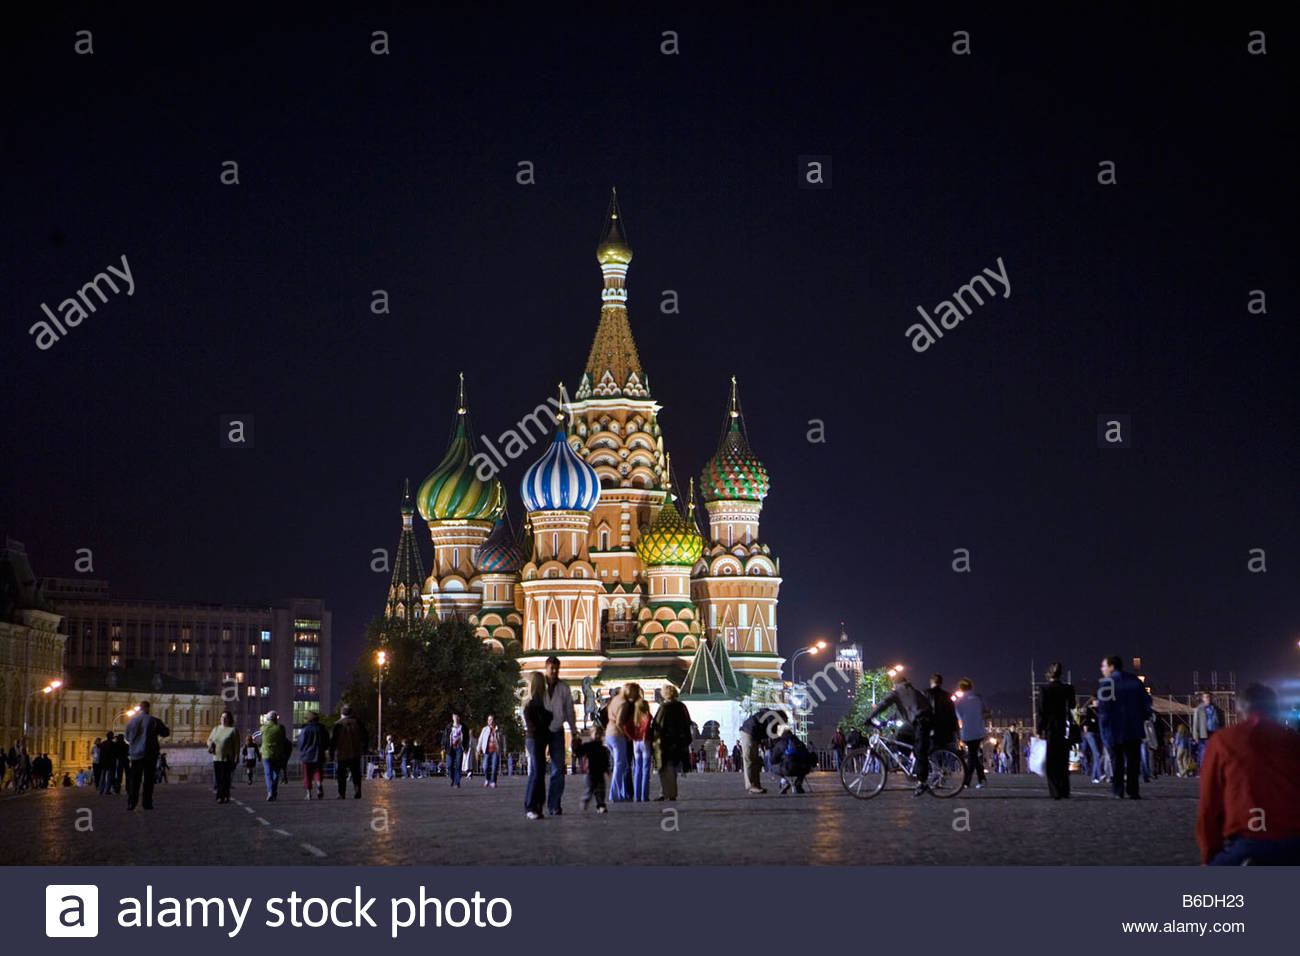 Russia, Moscow. Red Square. Basilius Cathedral at dusk. - Stock Image